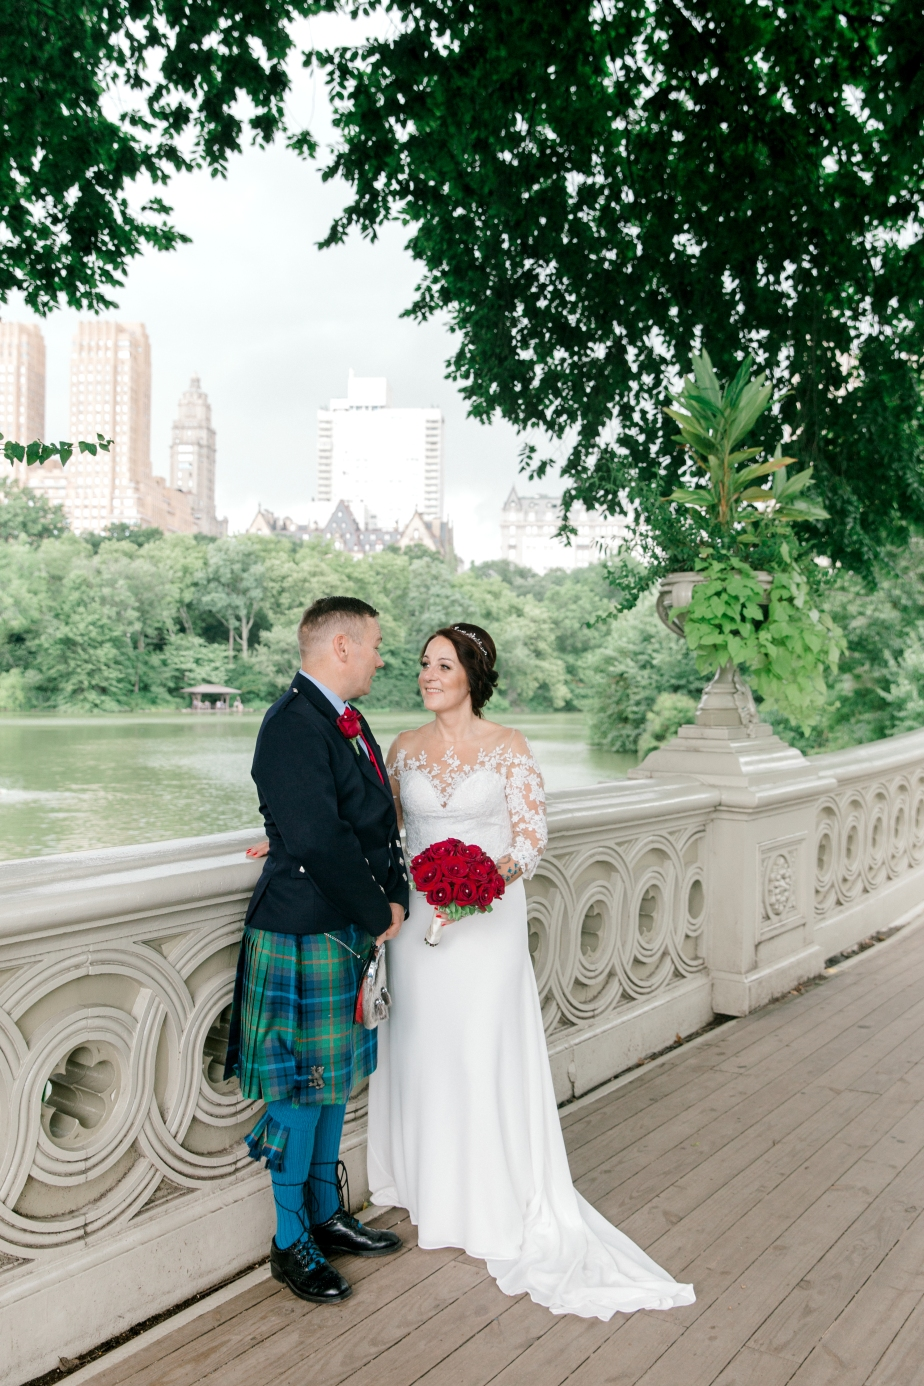 Central-park-wedding-JA-275